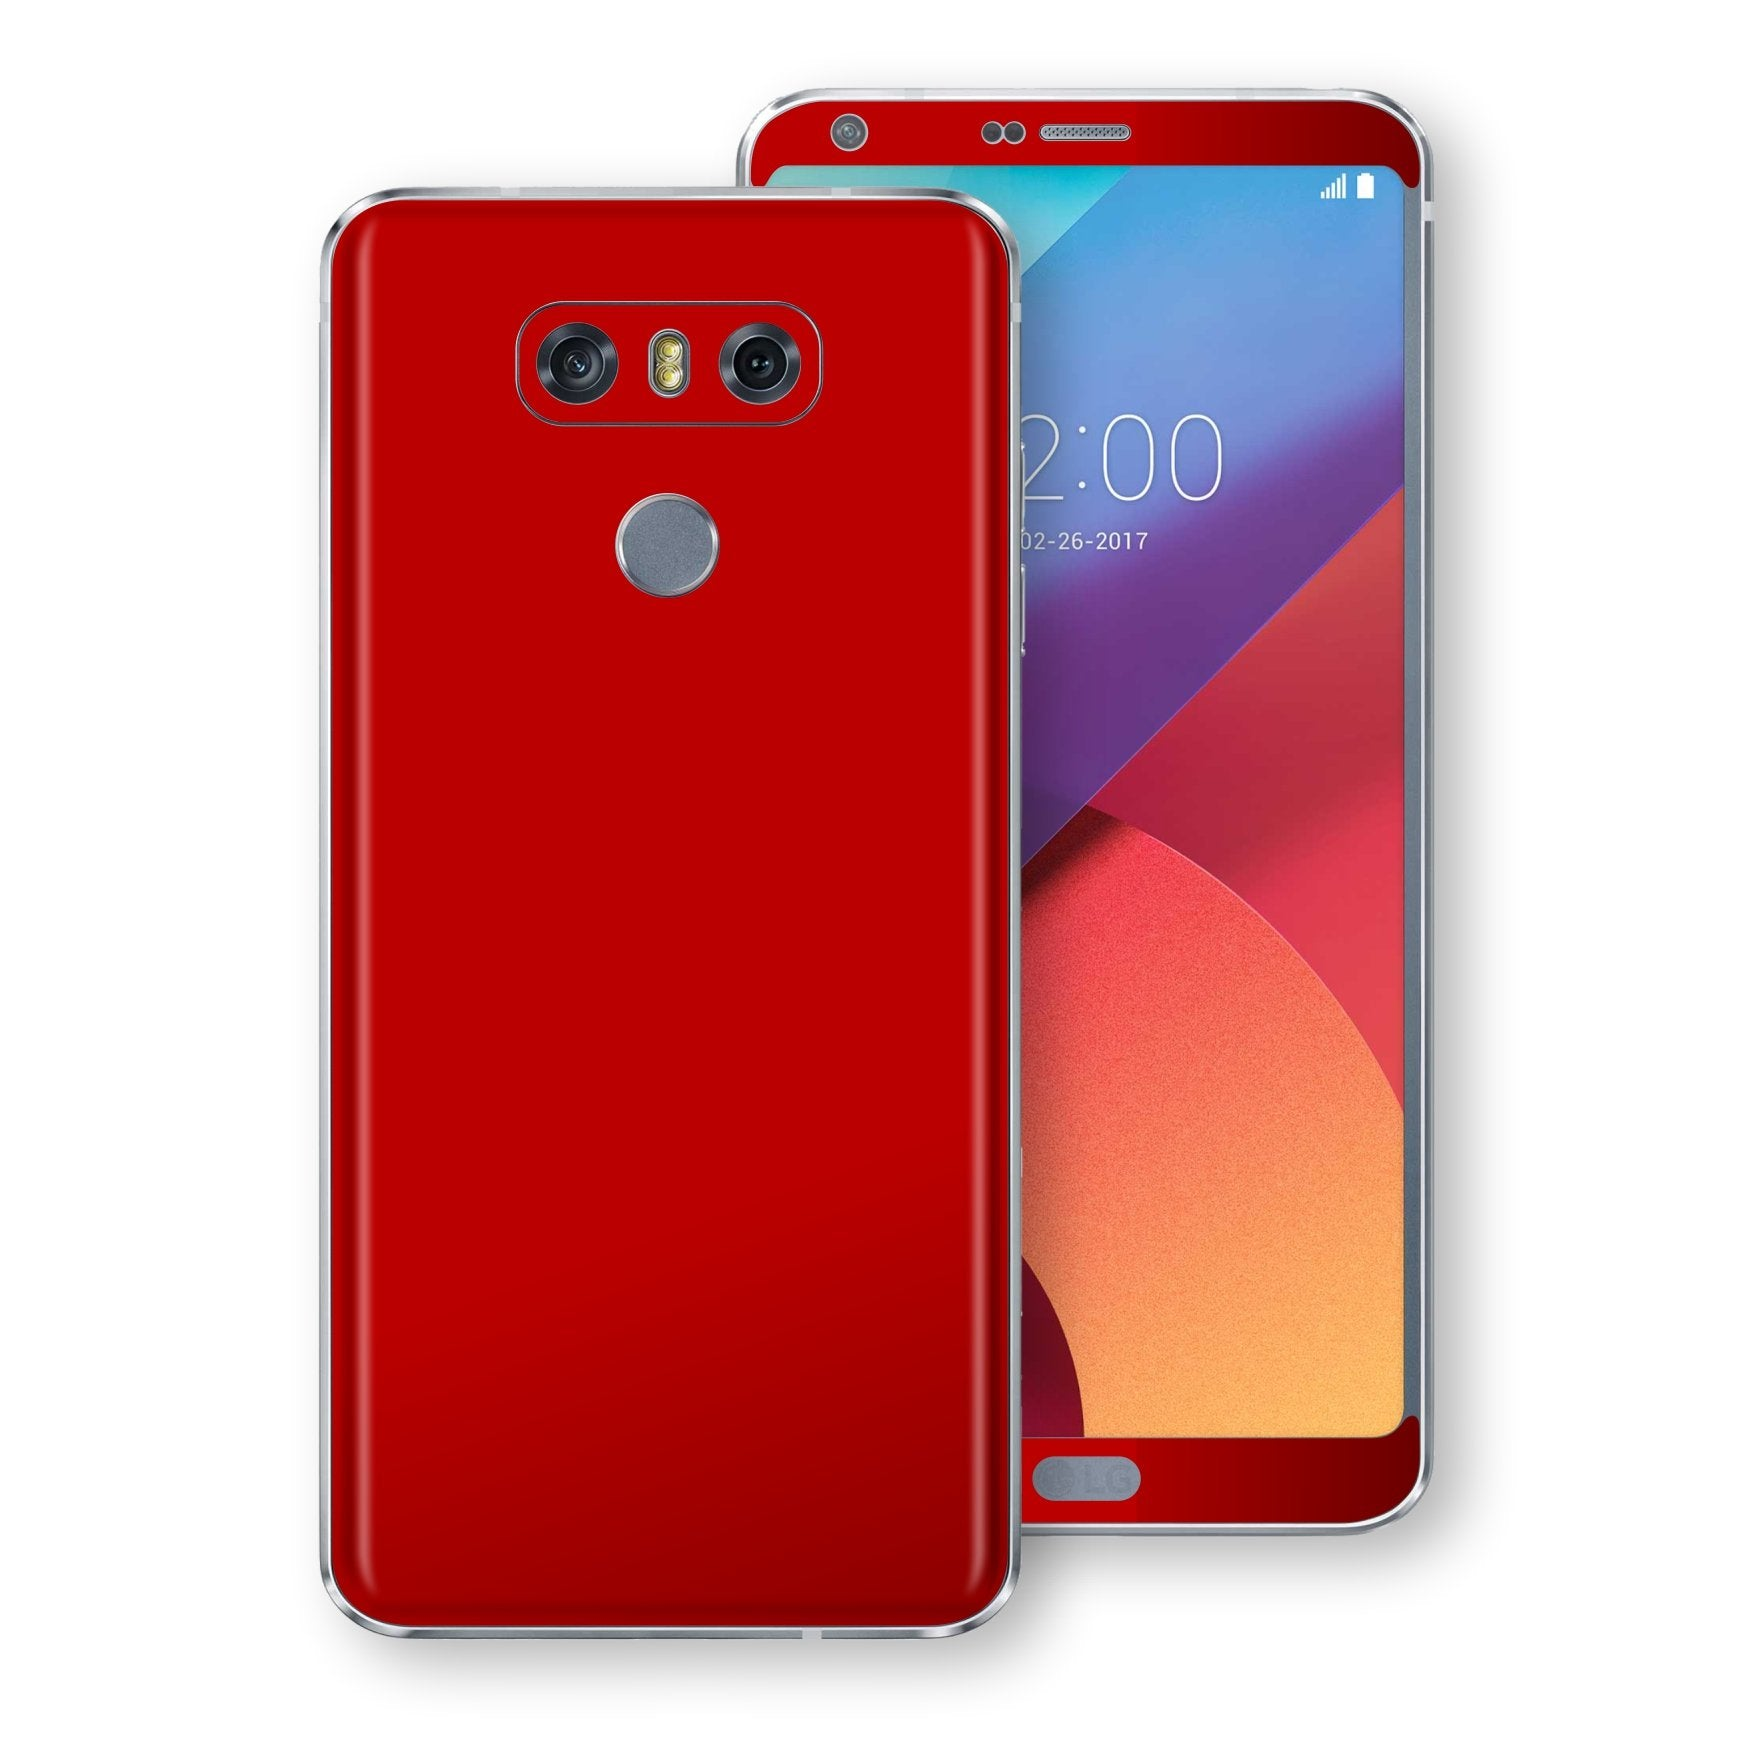 LG G6 Deep Red Glossy Gloss Finish Skin, Decal, Wrap, Protector, Cover by EasySkinz | EasySkinz.com